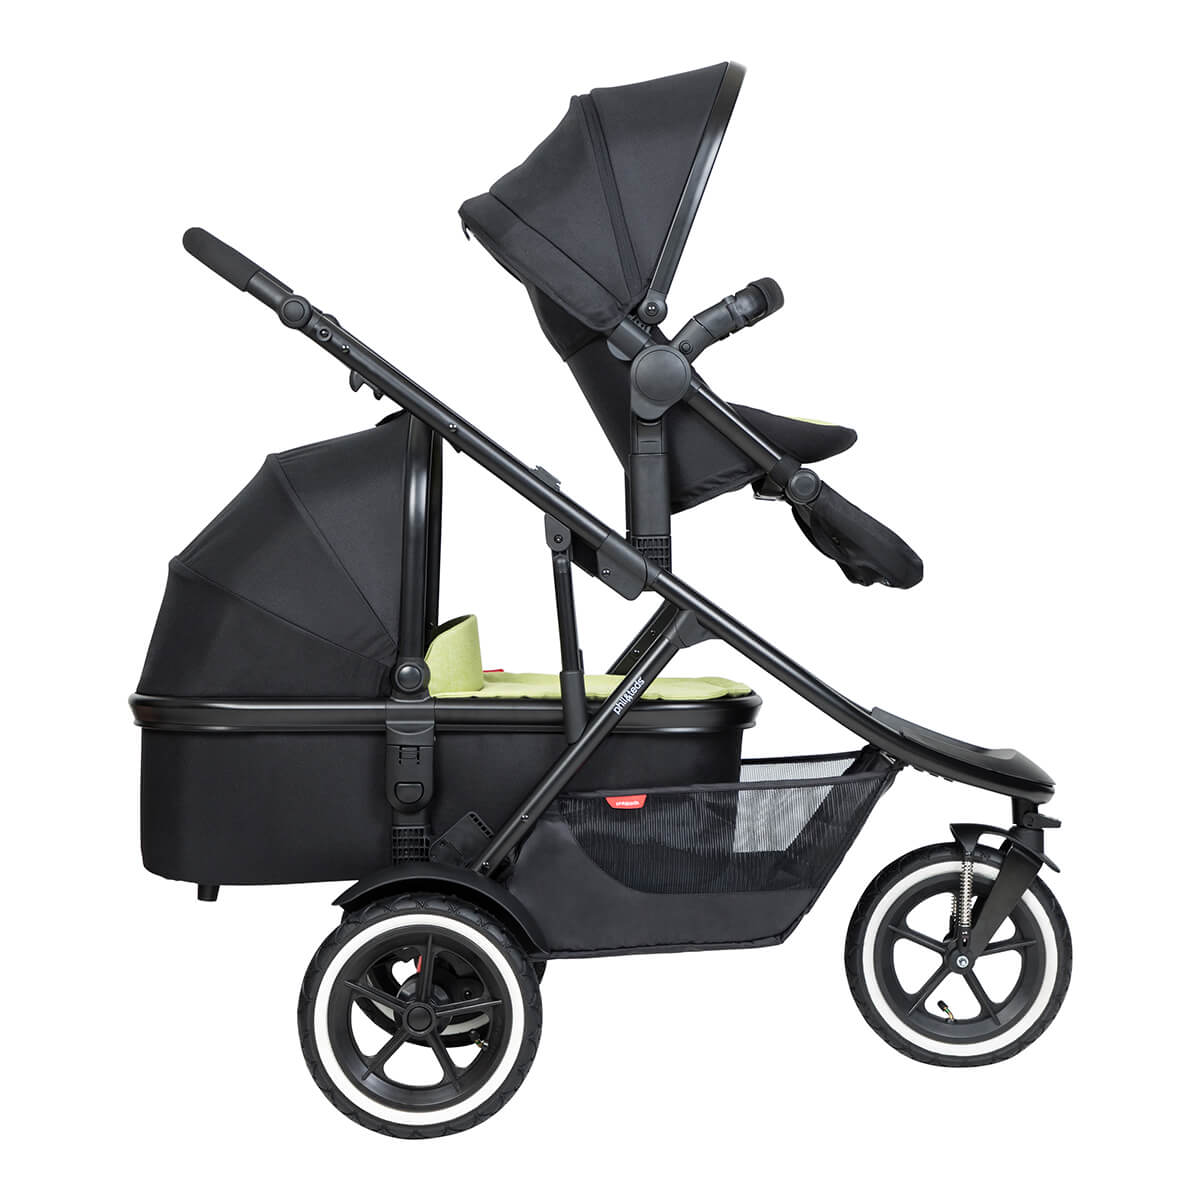 https://cdn.accentuate.io/4509906731085/19466204250306/philteds-sport-buggy-with-double-kit-extended-clip-and-snug-carrycot-side-view-v1626485483895.jpg?1200x1200